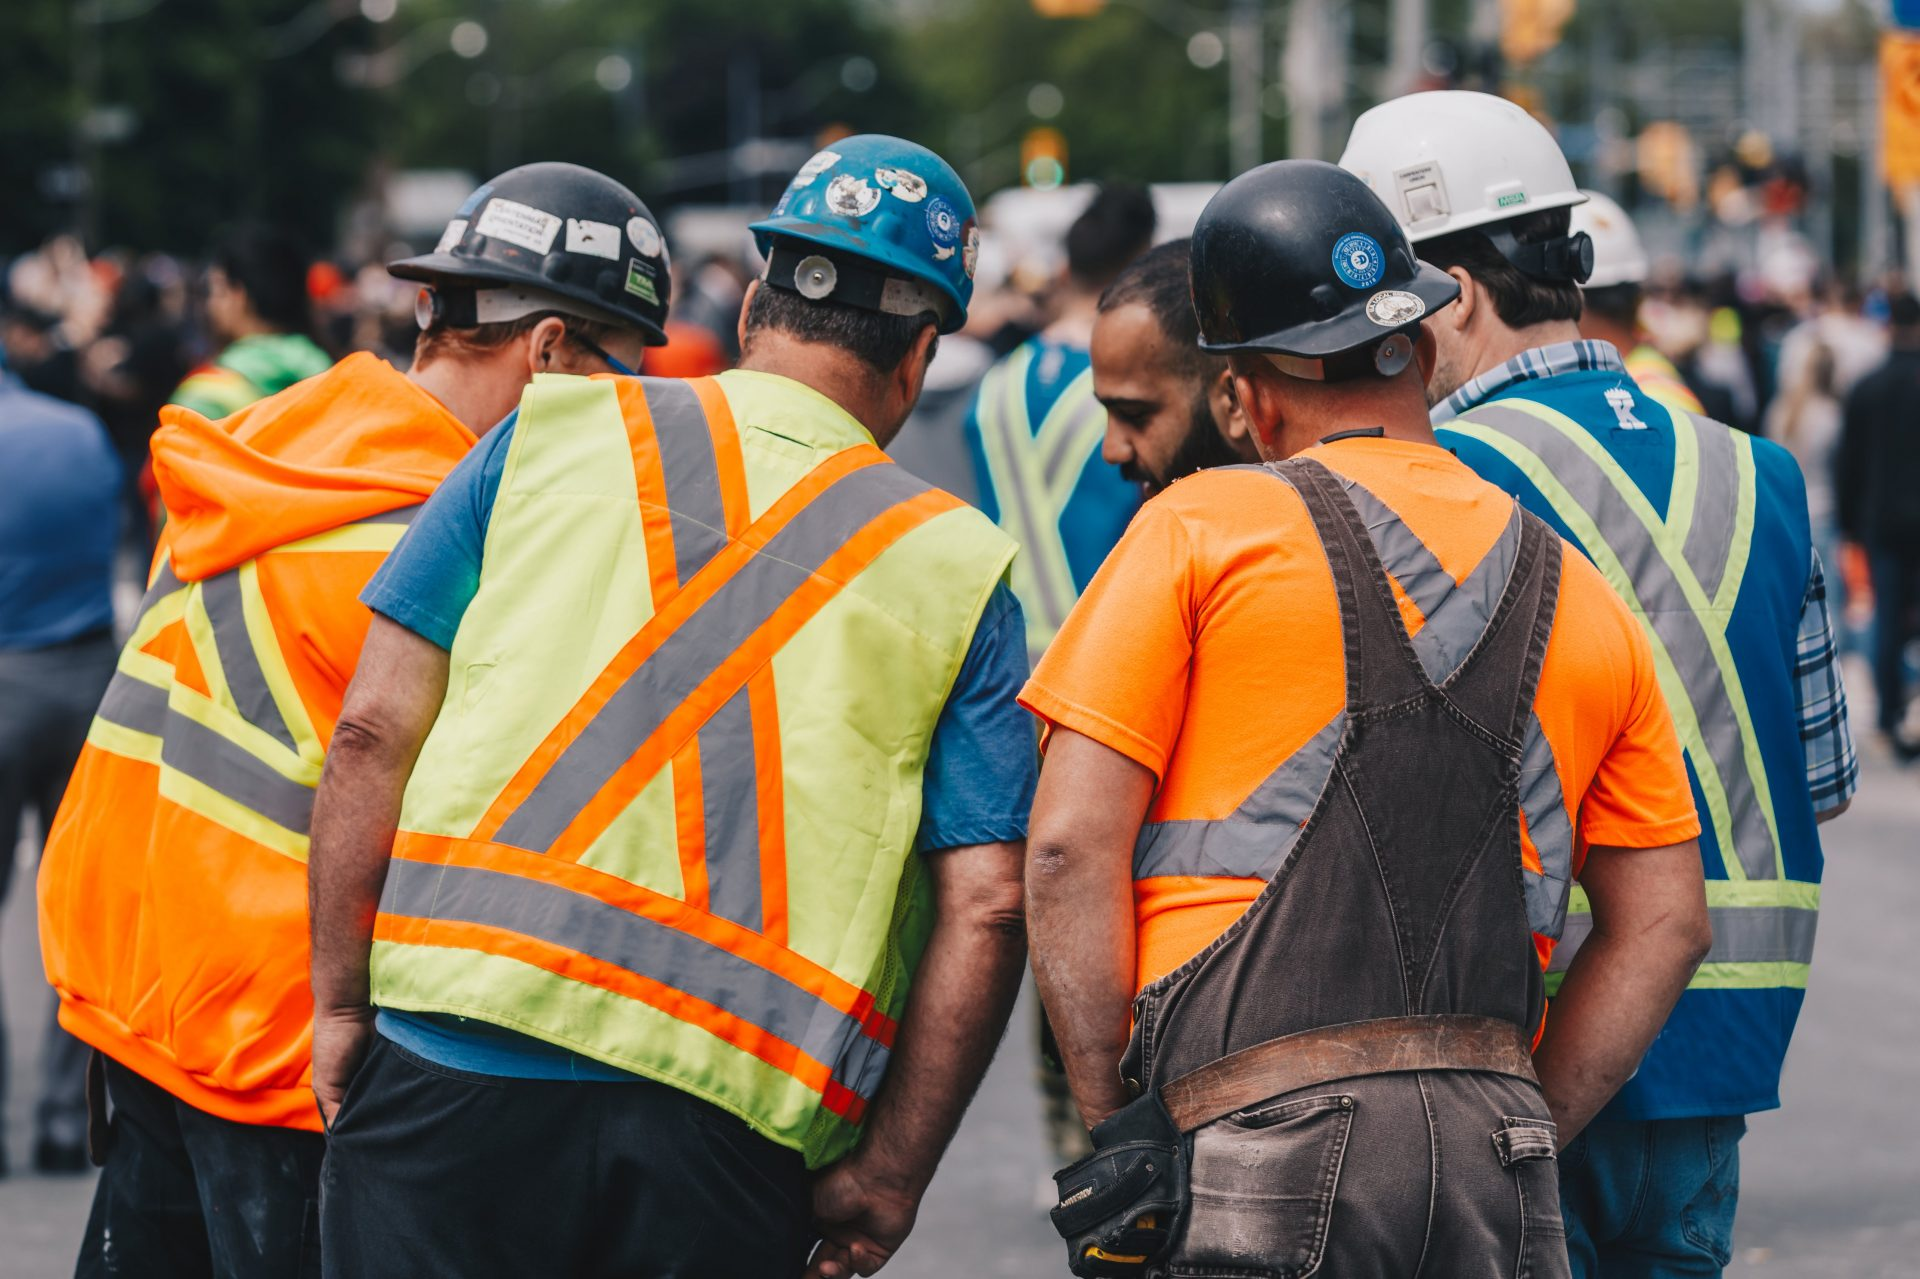 Optimizing Safety Management: The Importance of Real-Time Information